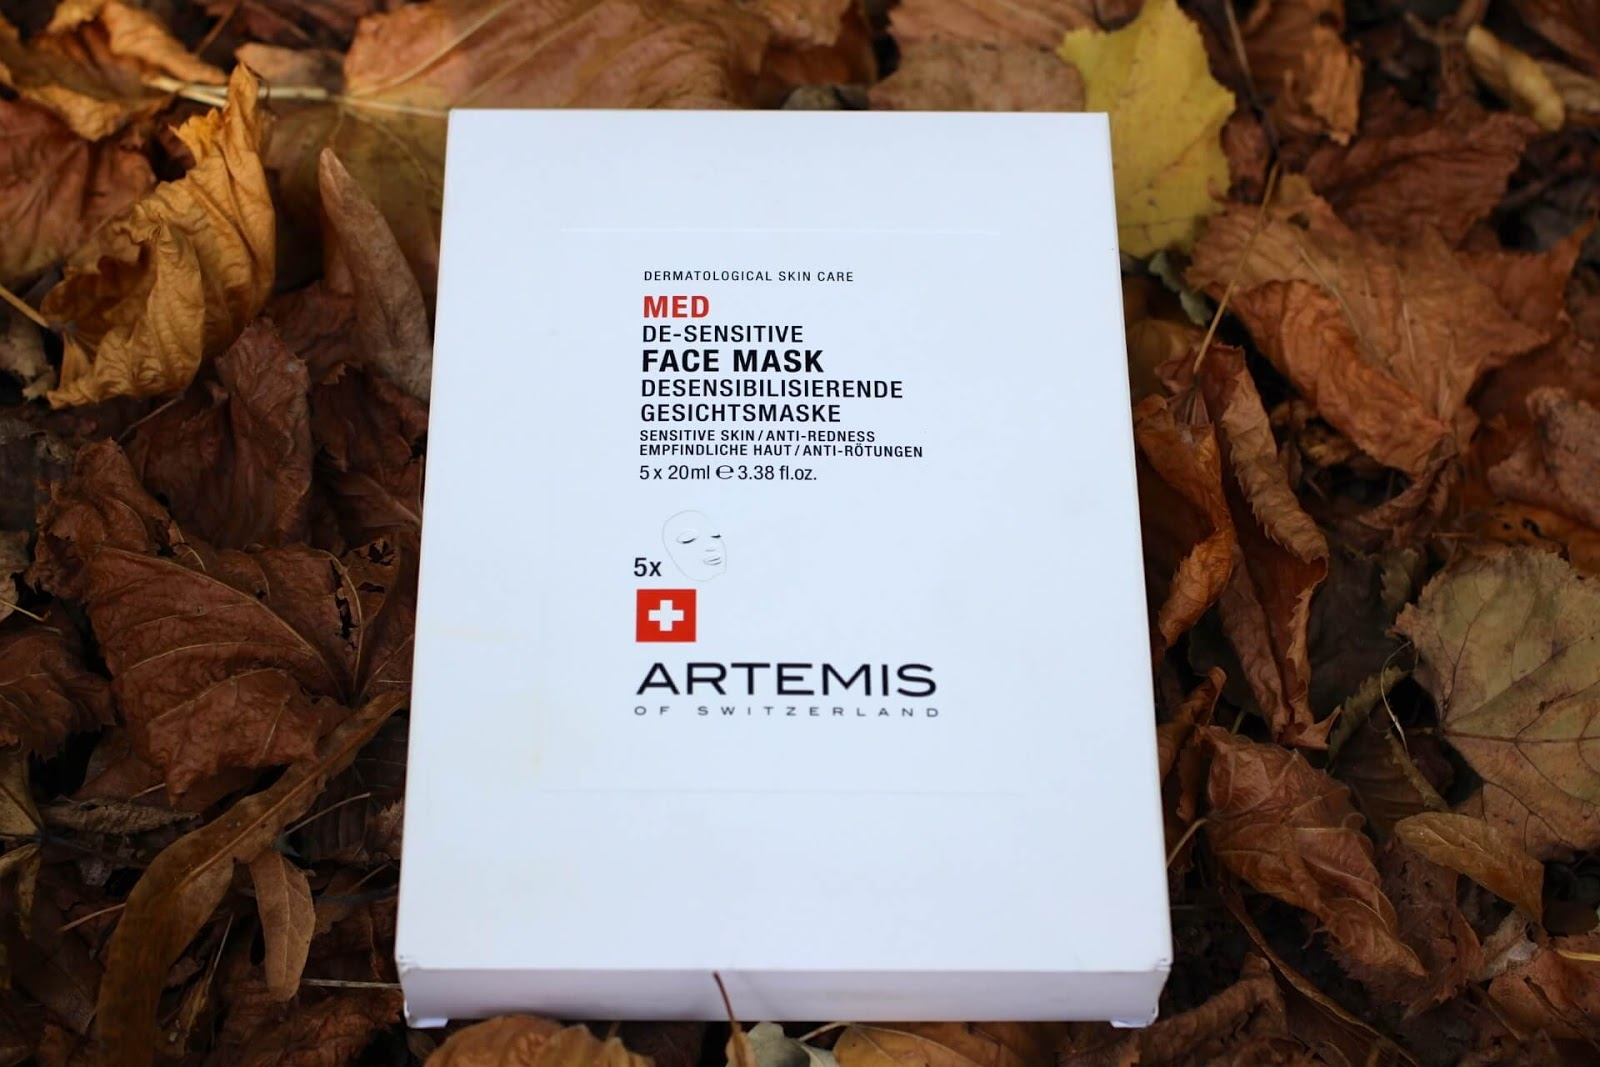 Artemis Med De-Sensitive Face Mask - Desensiblisierende Gesichtsmaske